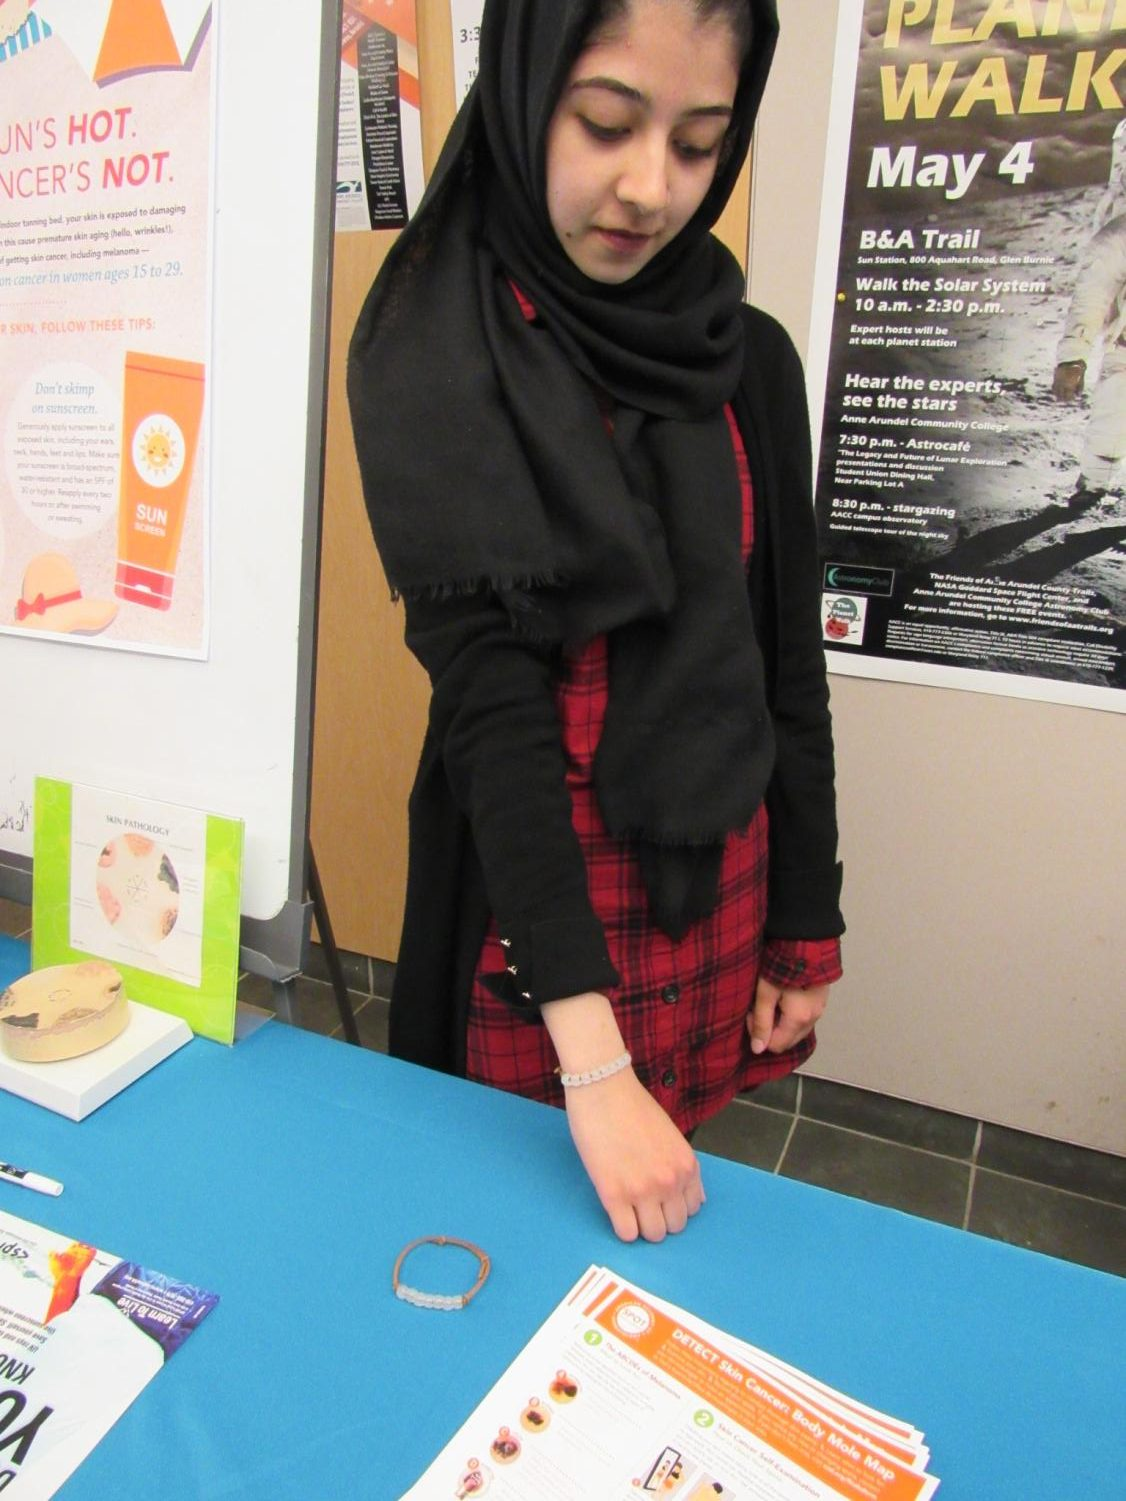 Lahiba Ijaz, a first-year business administration student, demonstrates how to use a special UV bracelet.